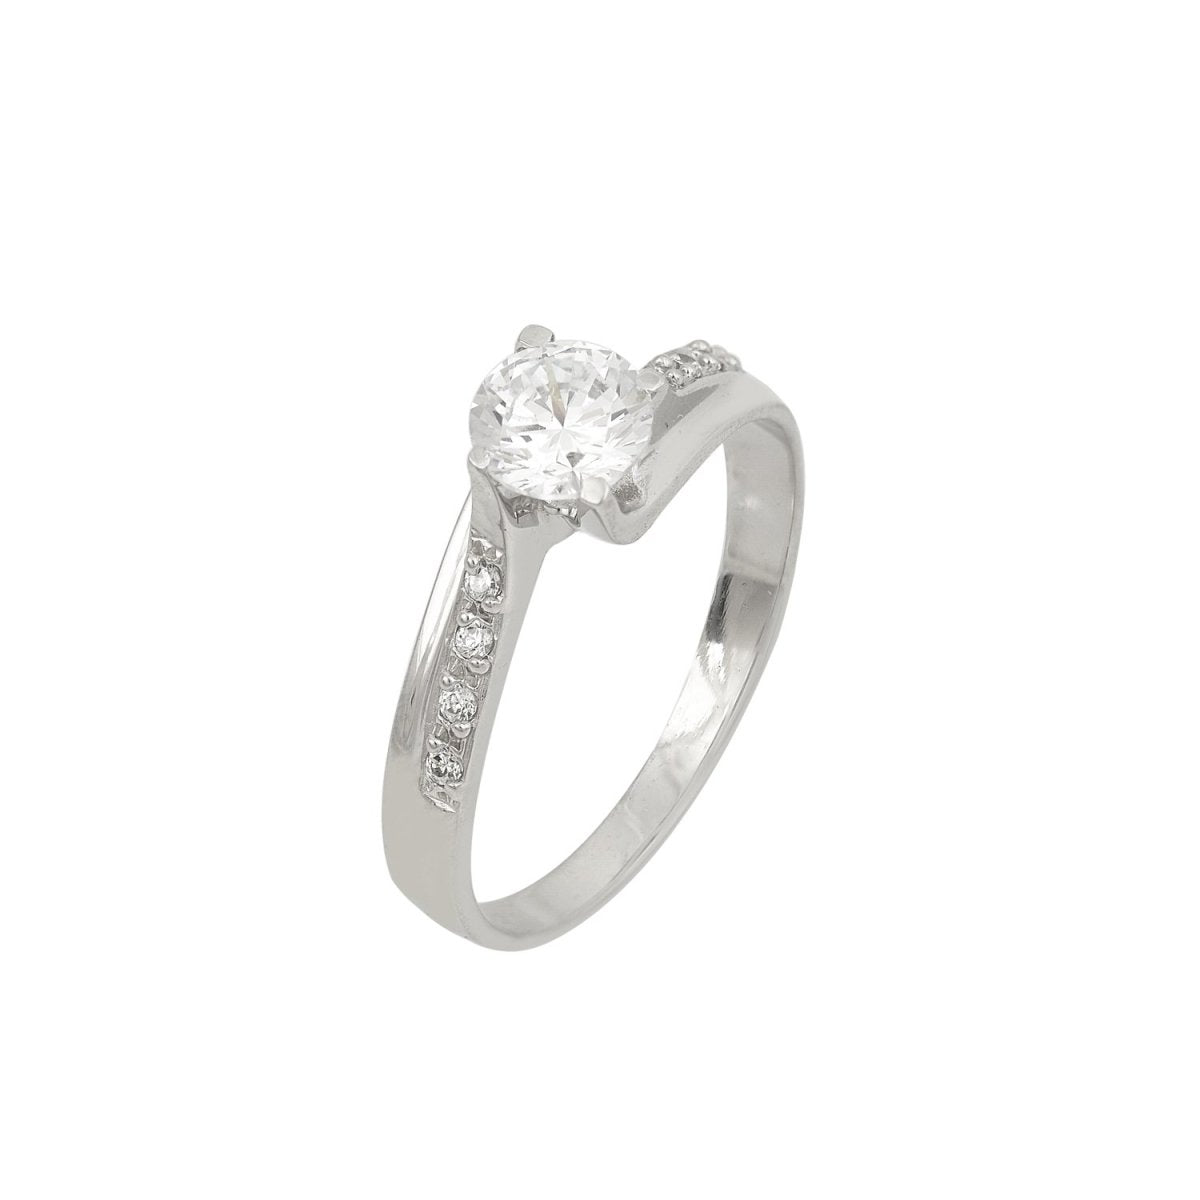 Single Stone Ring M7121 White Gold 14ct - Goldy Jewelry Store